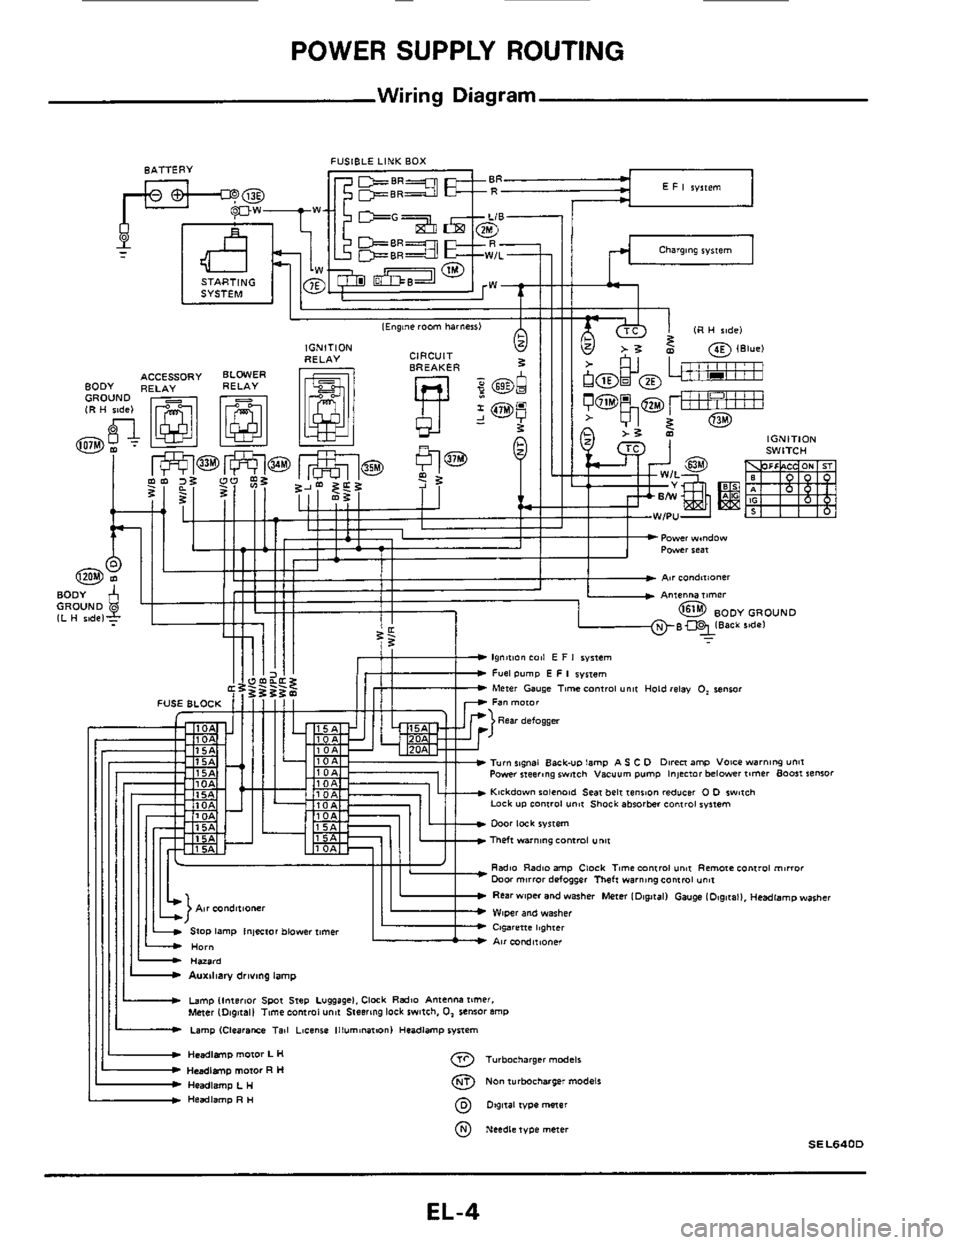 z32 wiring diagram z32 image wiring diagram nissan 300zx wiring harness relay gs 650 wire diagram on z32 wiring diagram